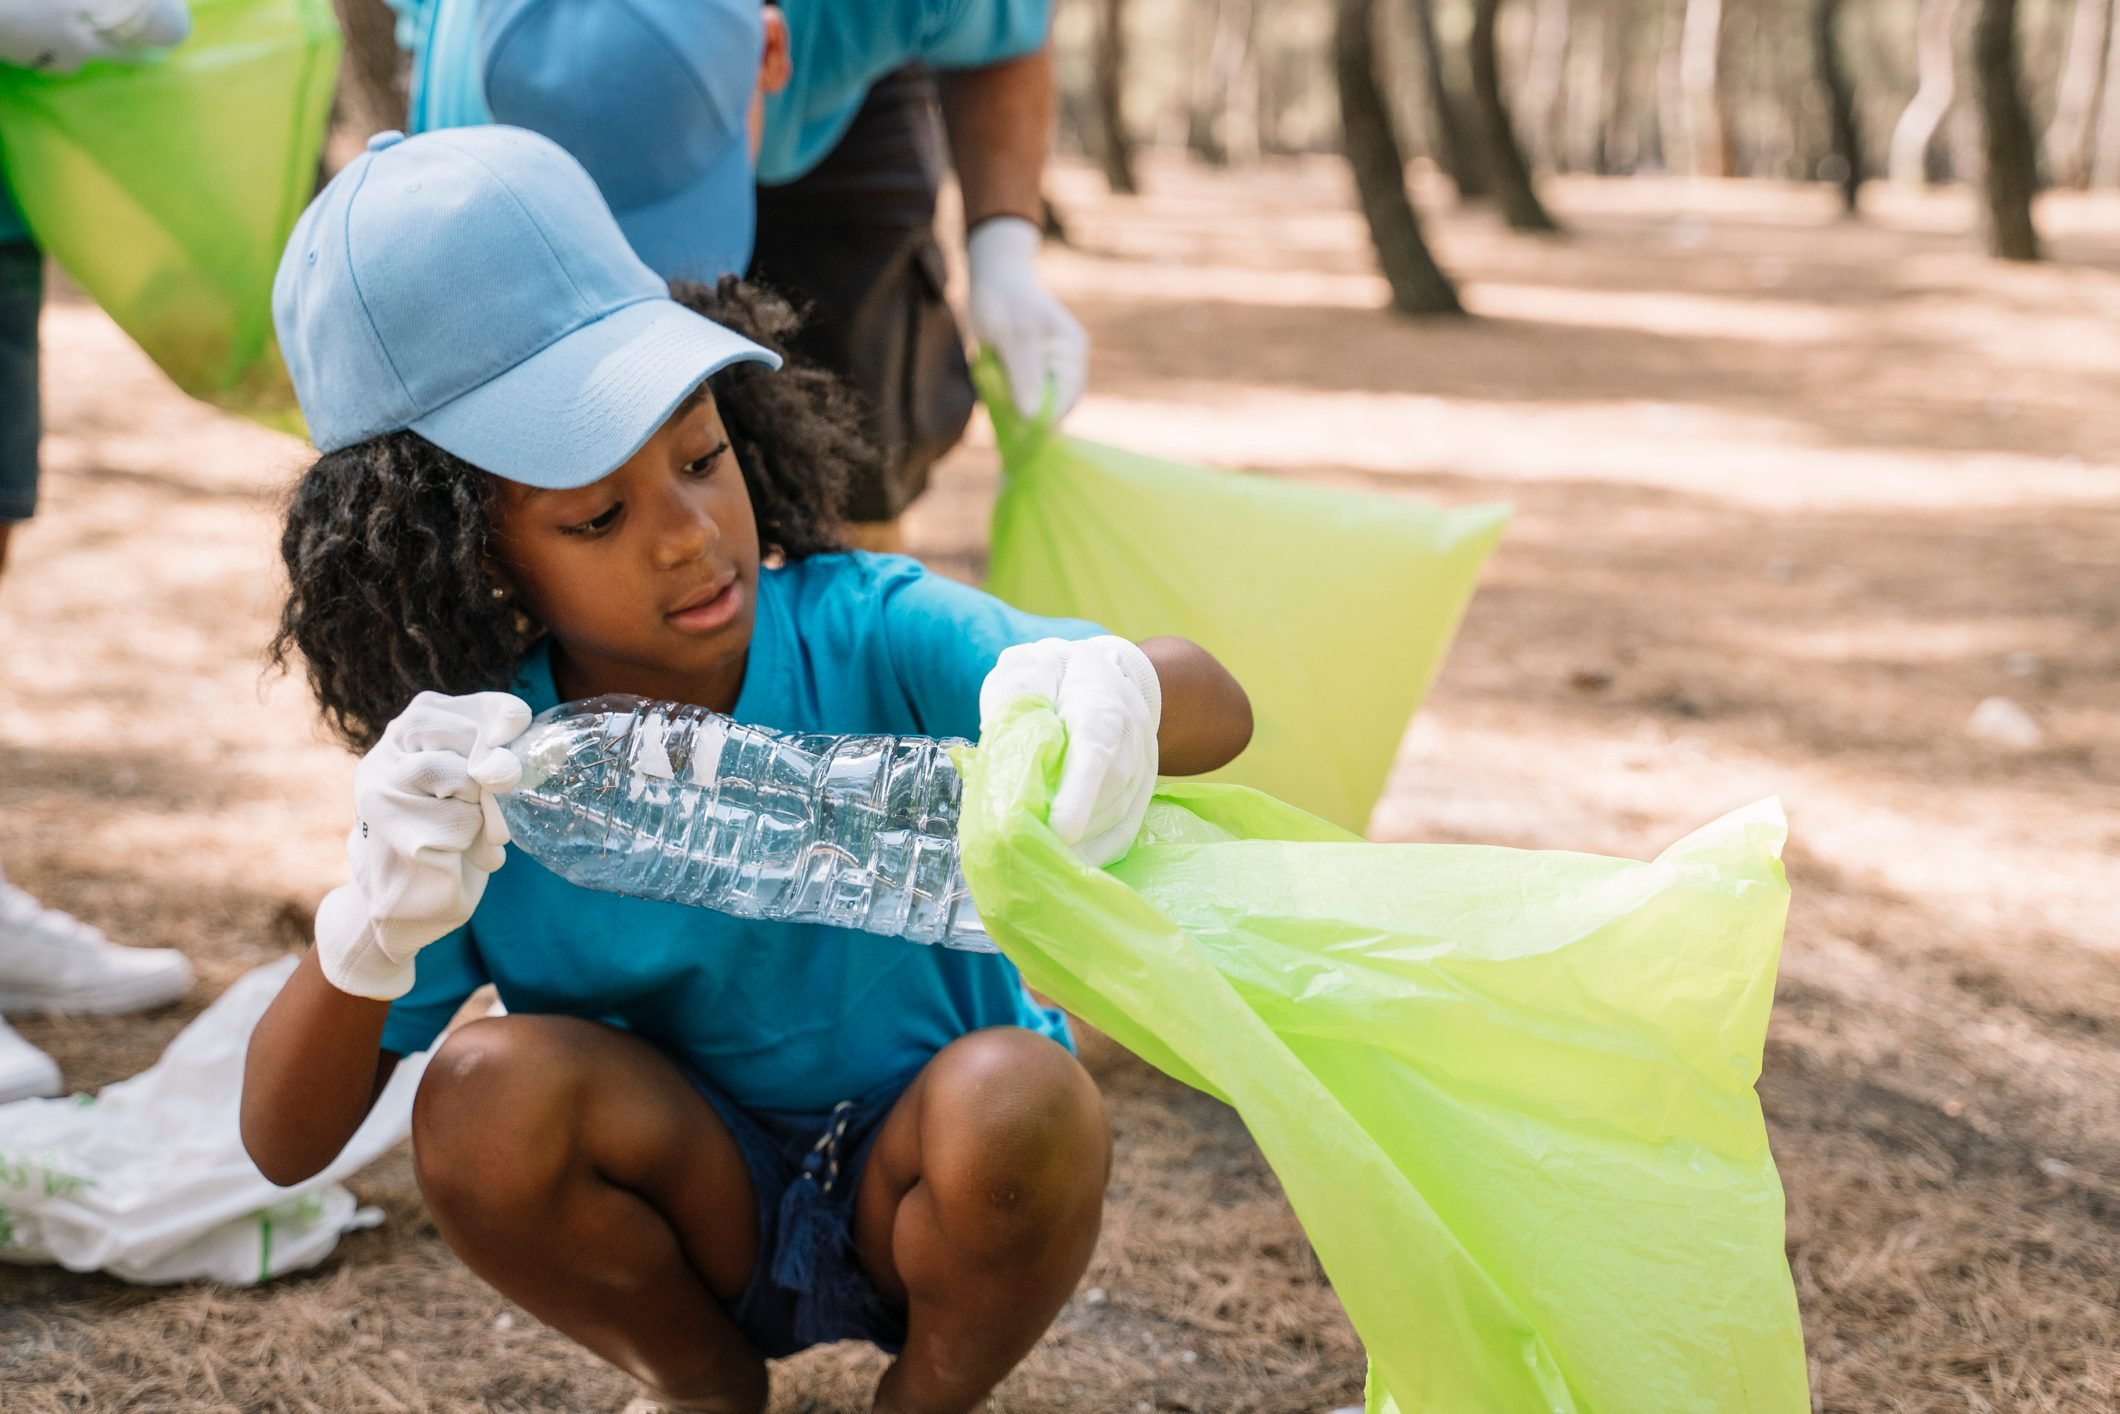 Group of volunteering children collecting garbage in a park